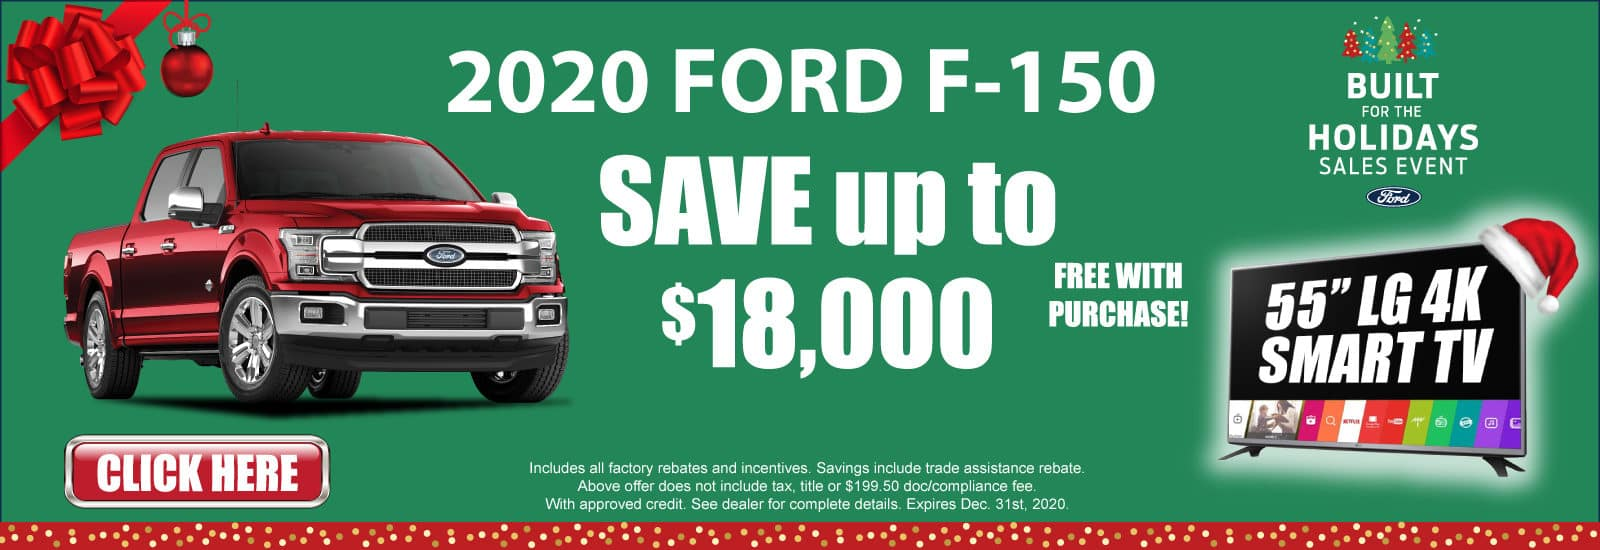 holiday2020-Ford-F-150-Web-Banner-1600×550